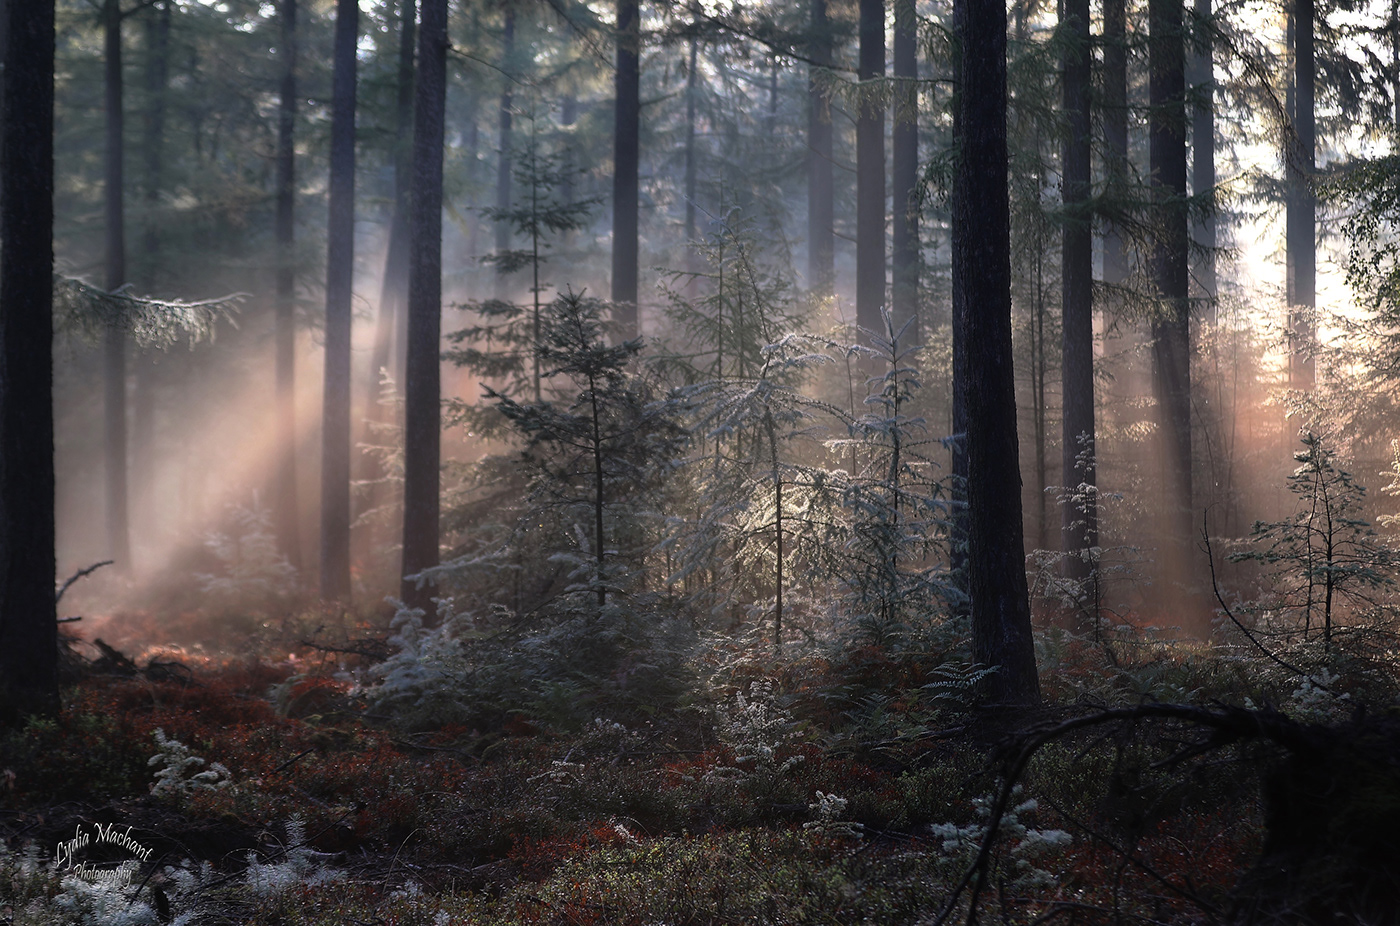 Wildf lowers - Forest | фотограф Lydia Machant